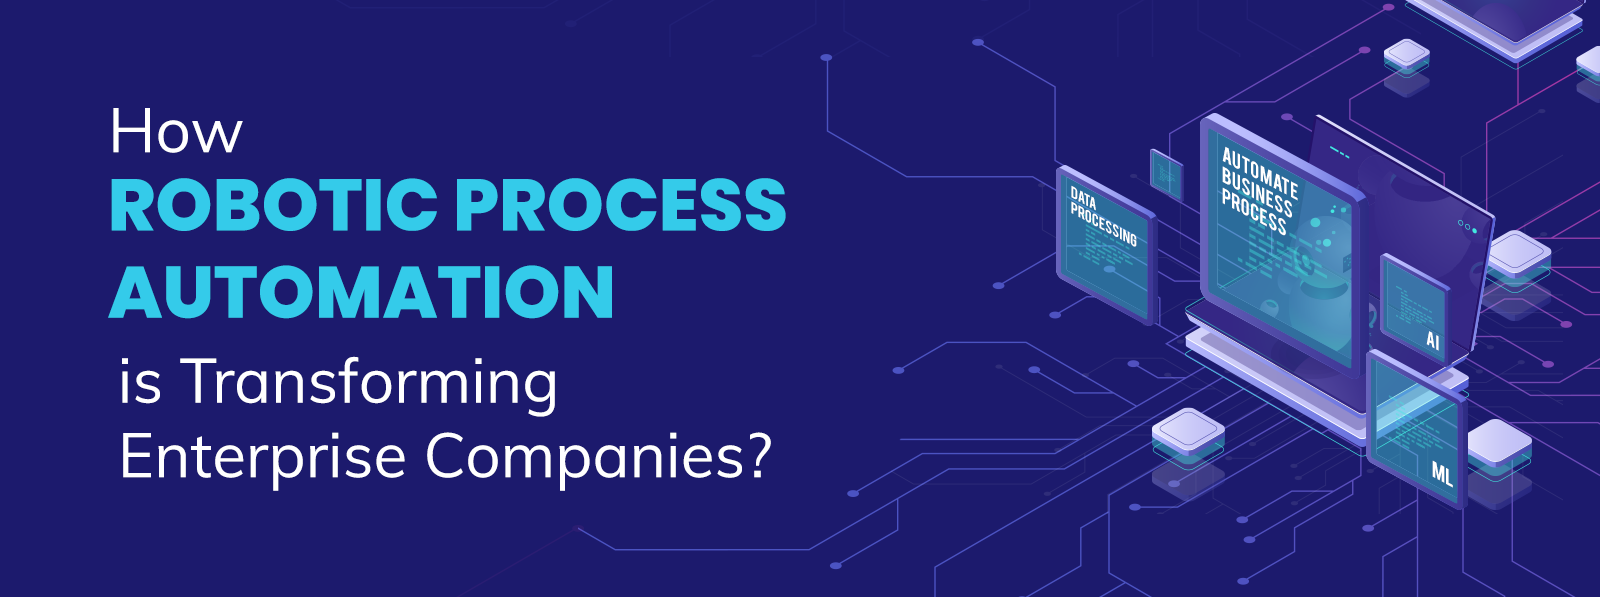 How-is-RPA-Revolutionizing-Enterprise-Companies